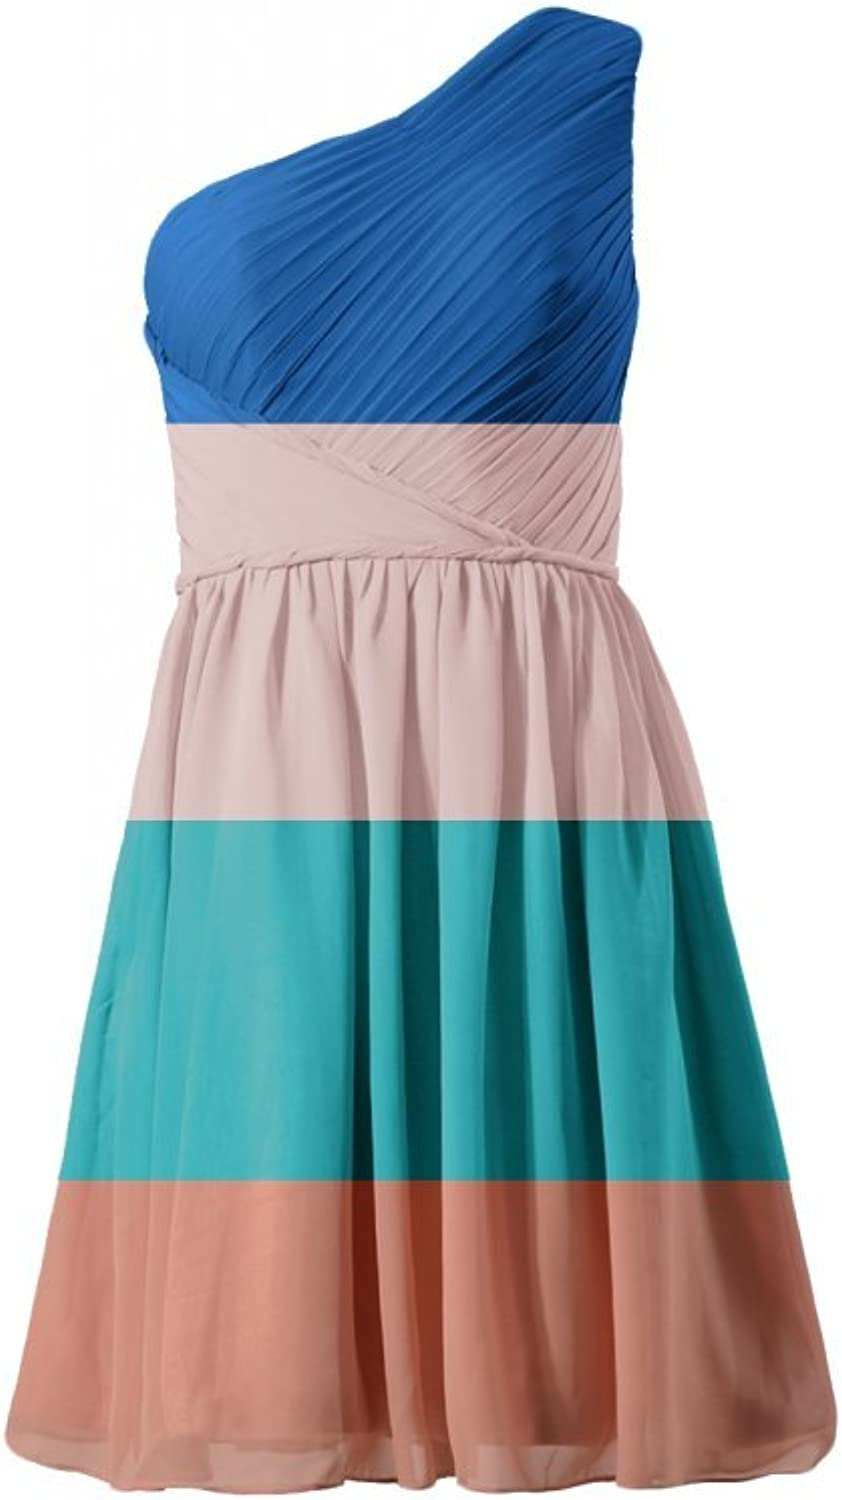 DaisyFormals reg; One Shoulder Cocktail Dress Knee Length Party Dress(BM2394)